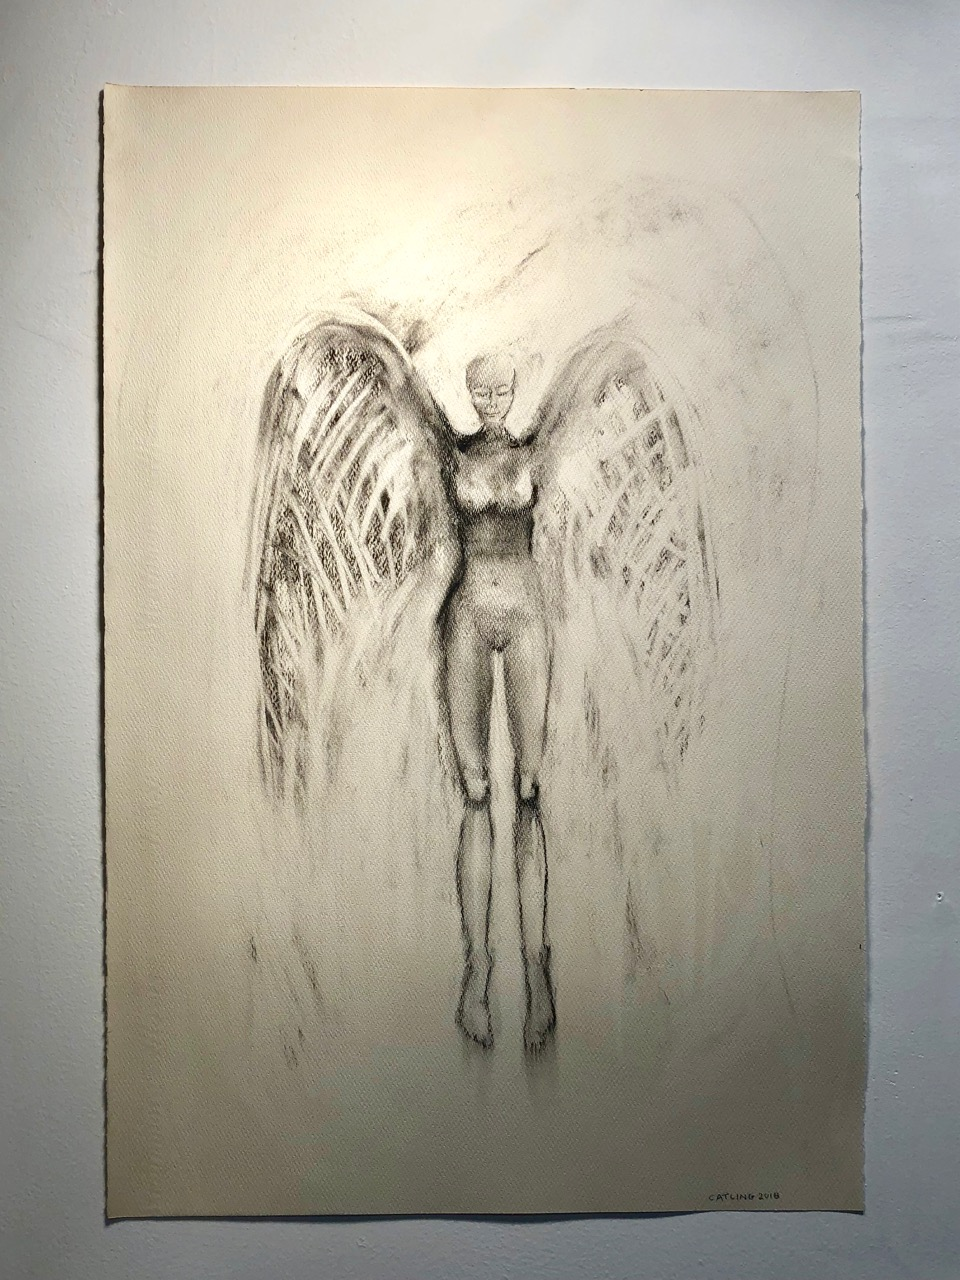 Guardian at rest   2018  Charcoal on paper  30 x 20""